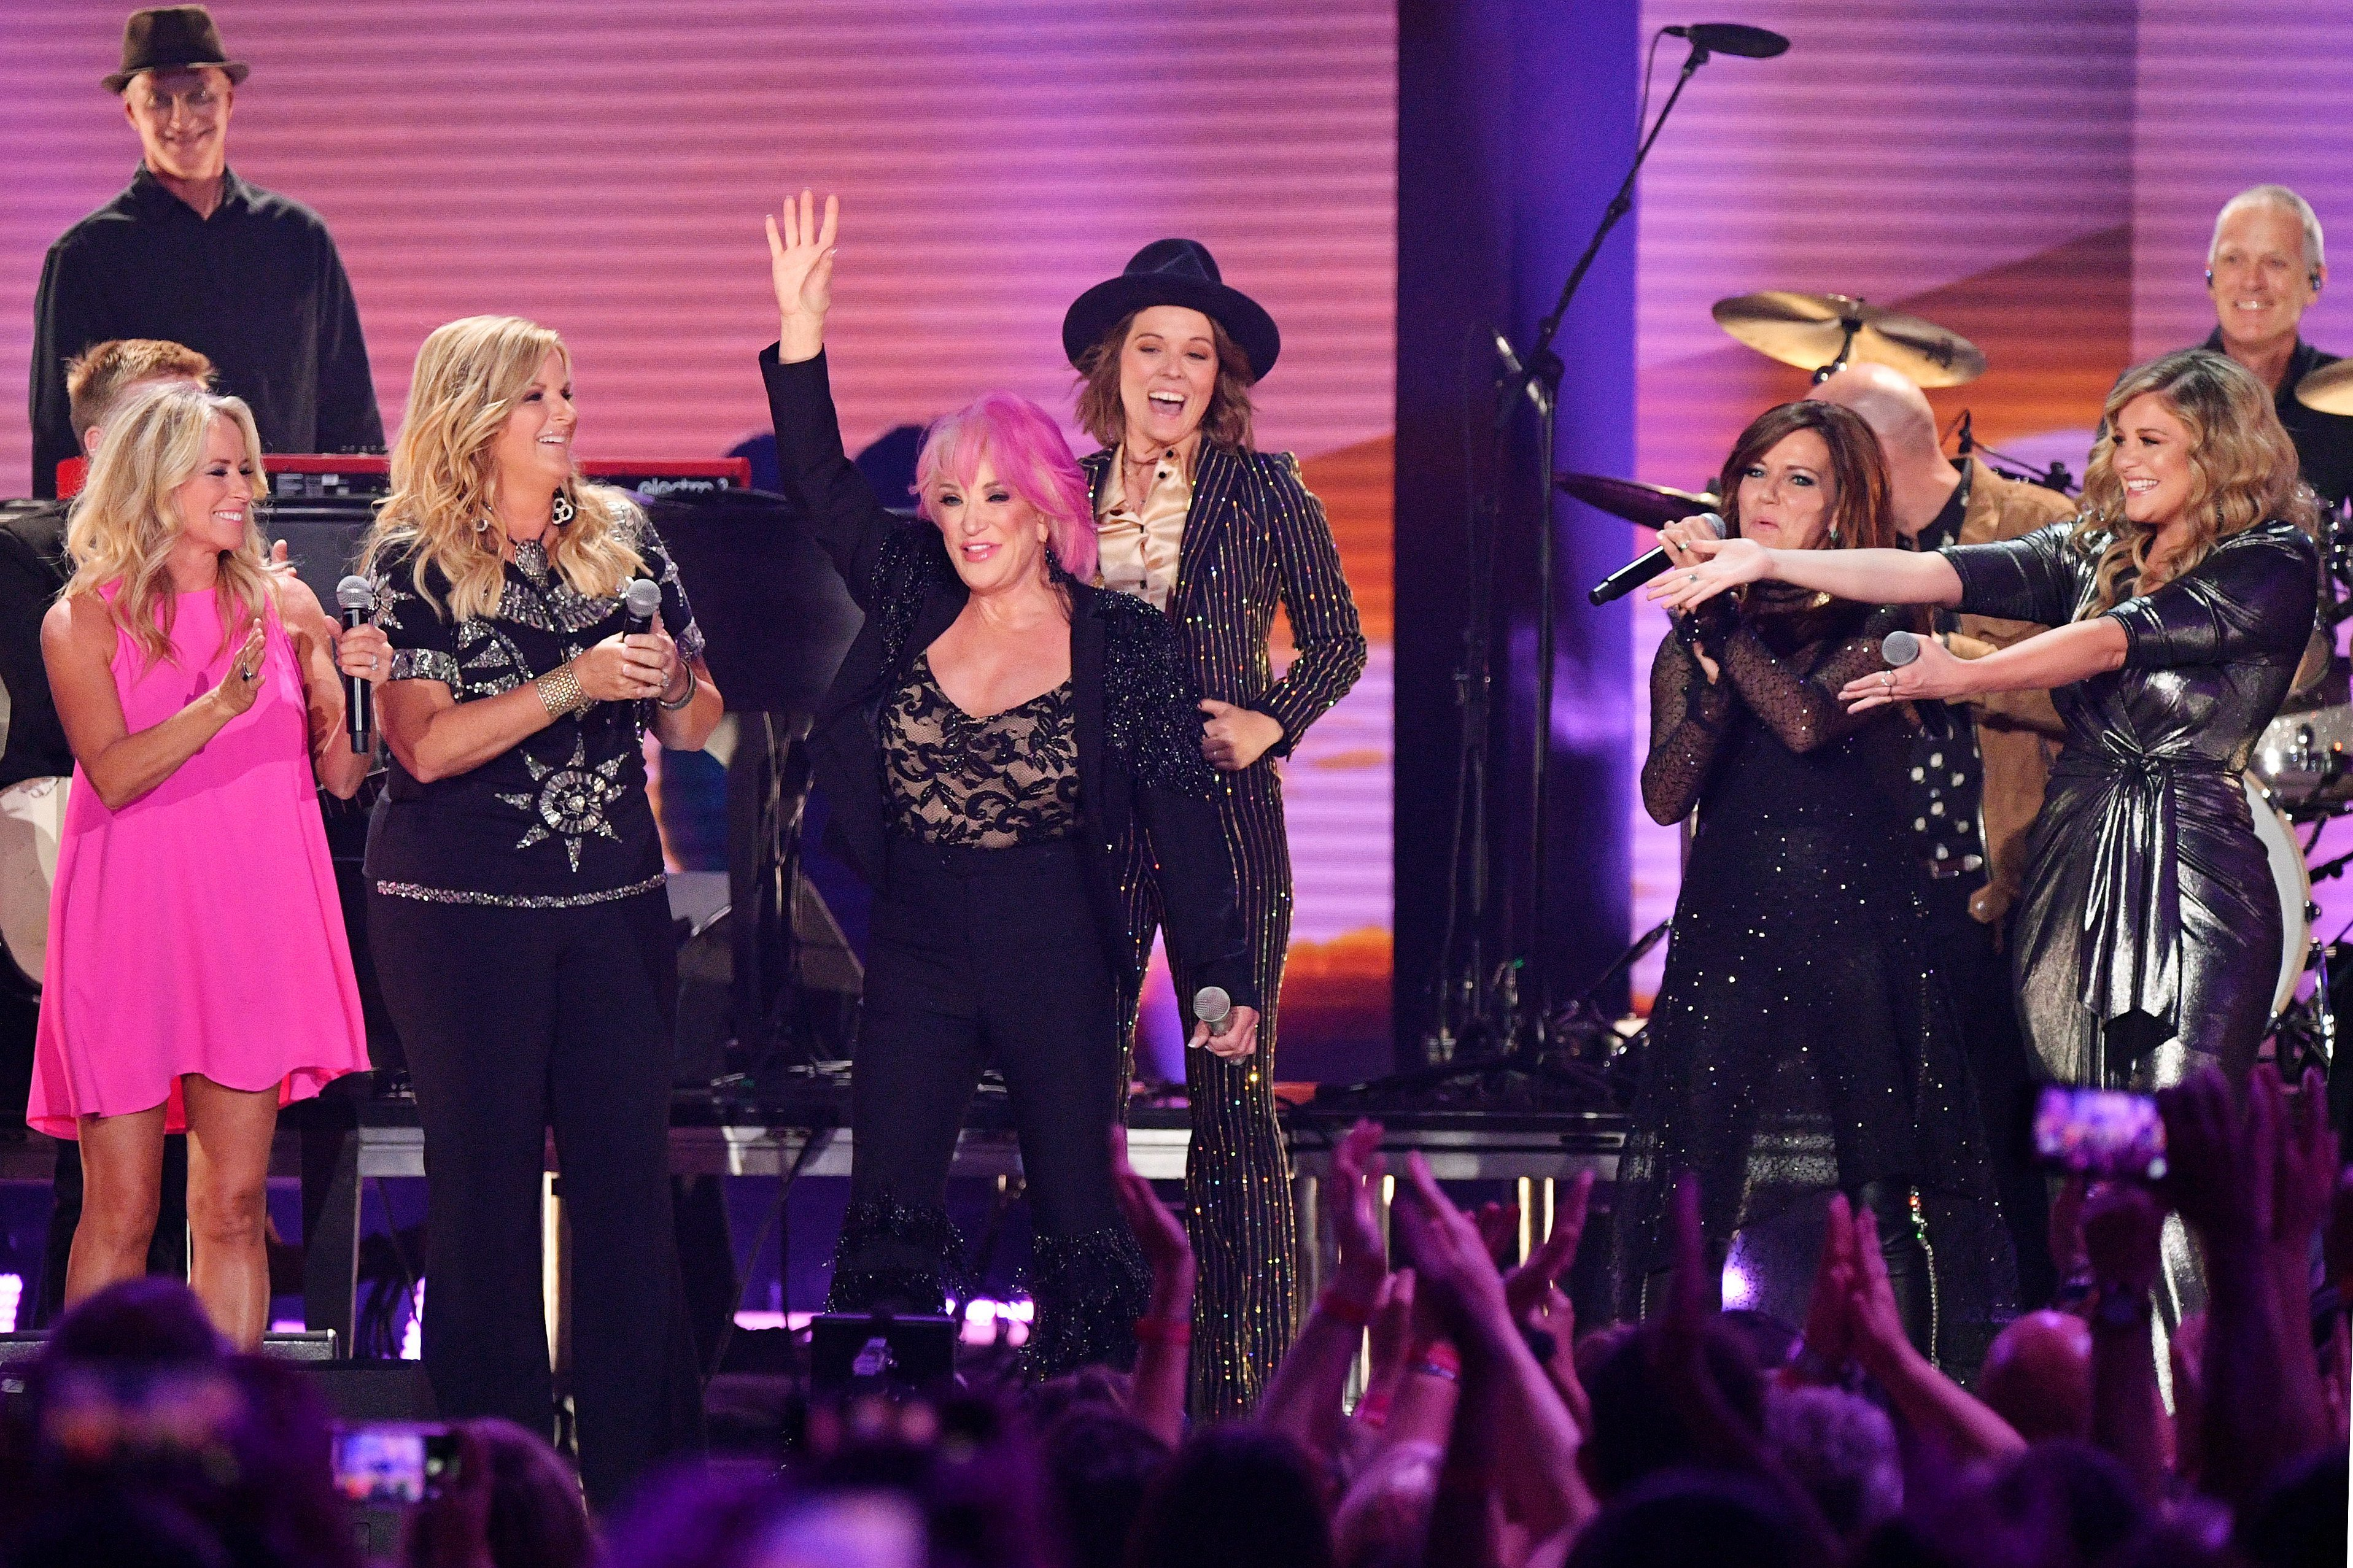 Tanya Tucker with Trisha Yearwood, Brandi Carlile, Martina McBride and Lauren Alaina at the 2019 CMT Music Awards in Nashville, Tennessee   Photo: Getty Images